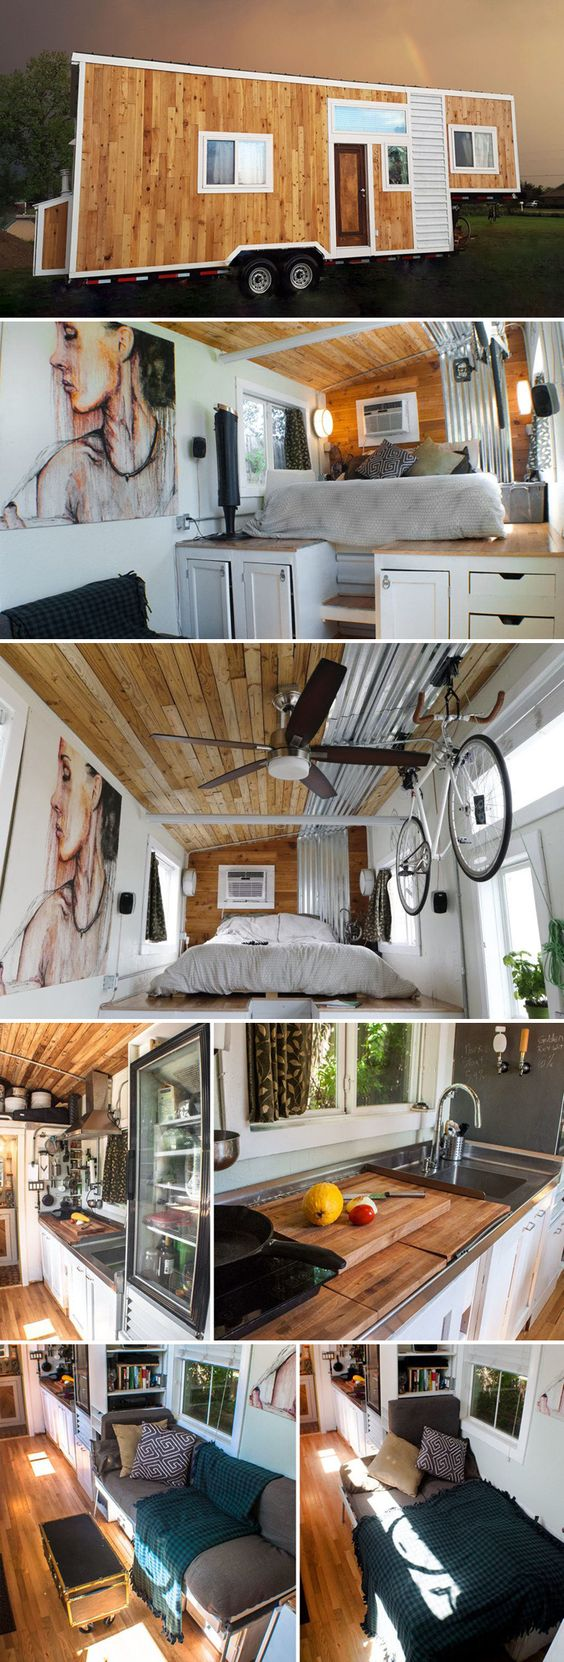 Gooseneck Tiny home on pinterest